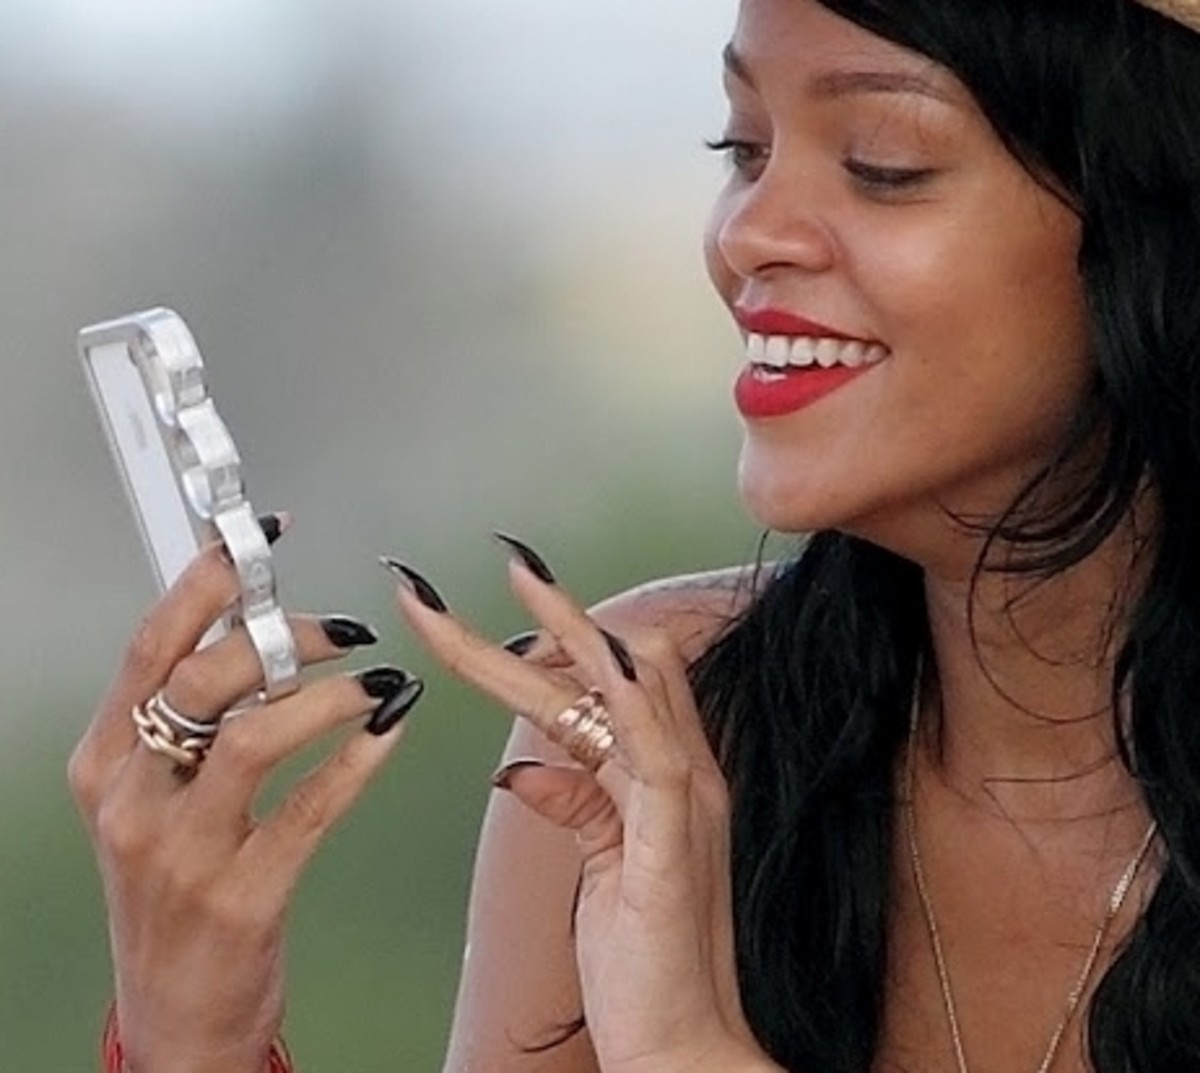 Rihanna with the iPhone knuckle case